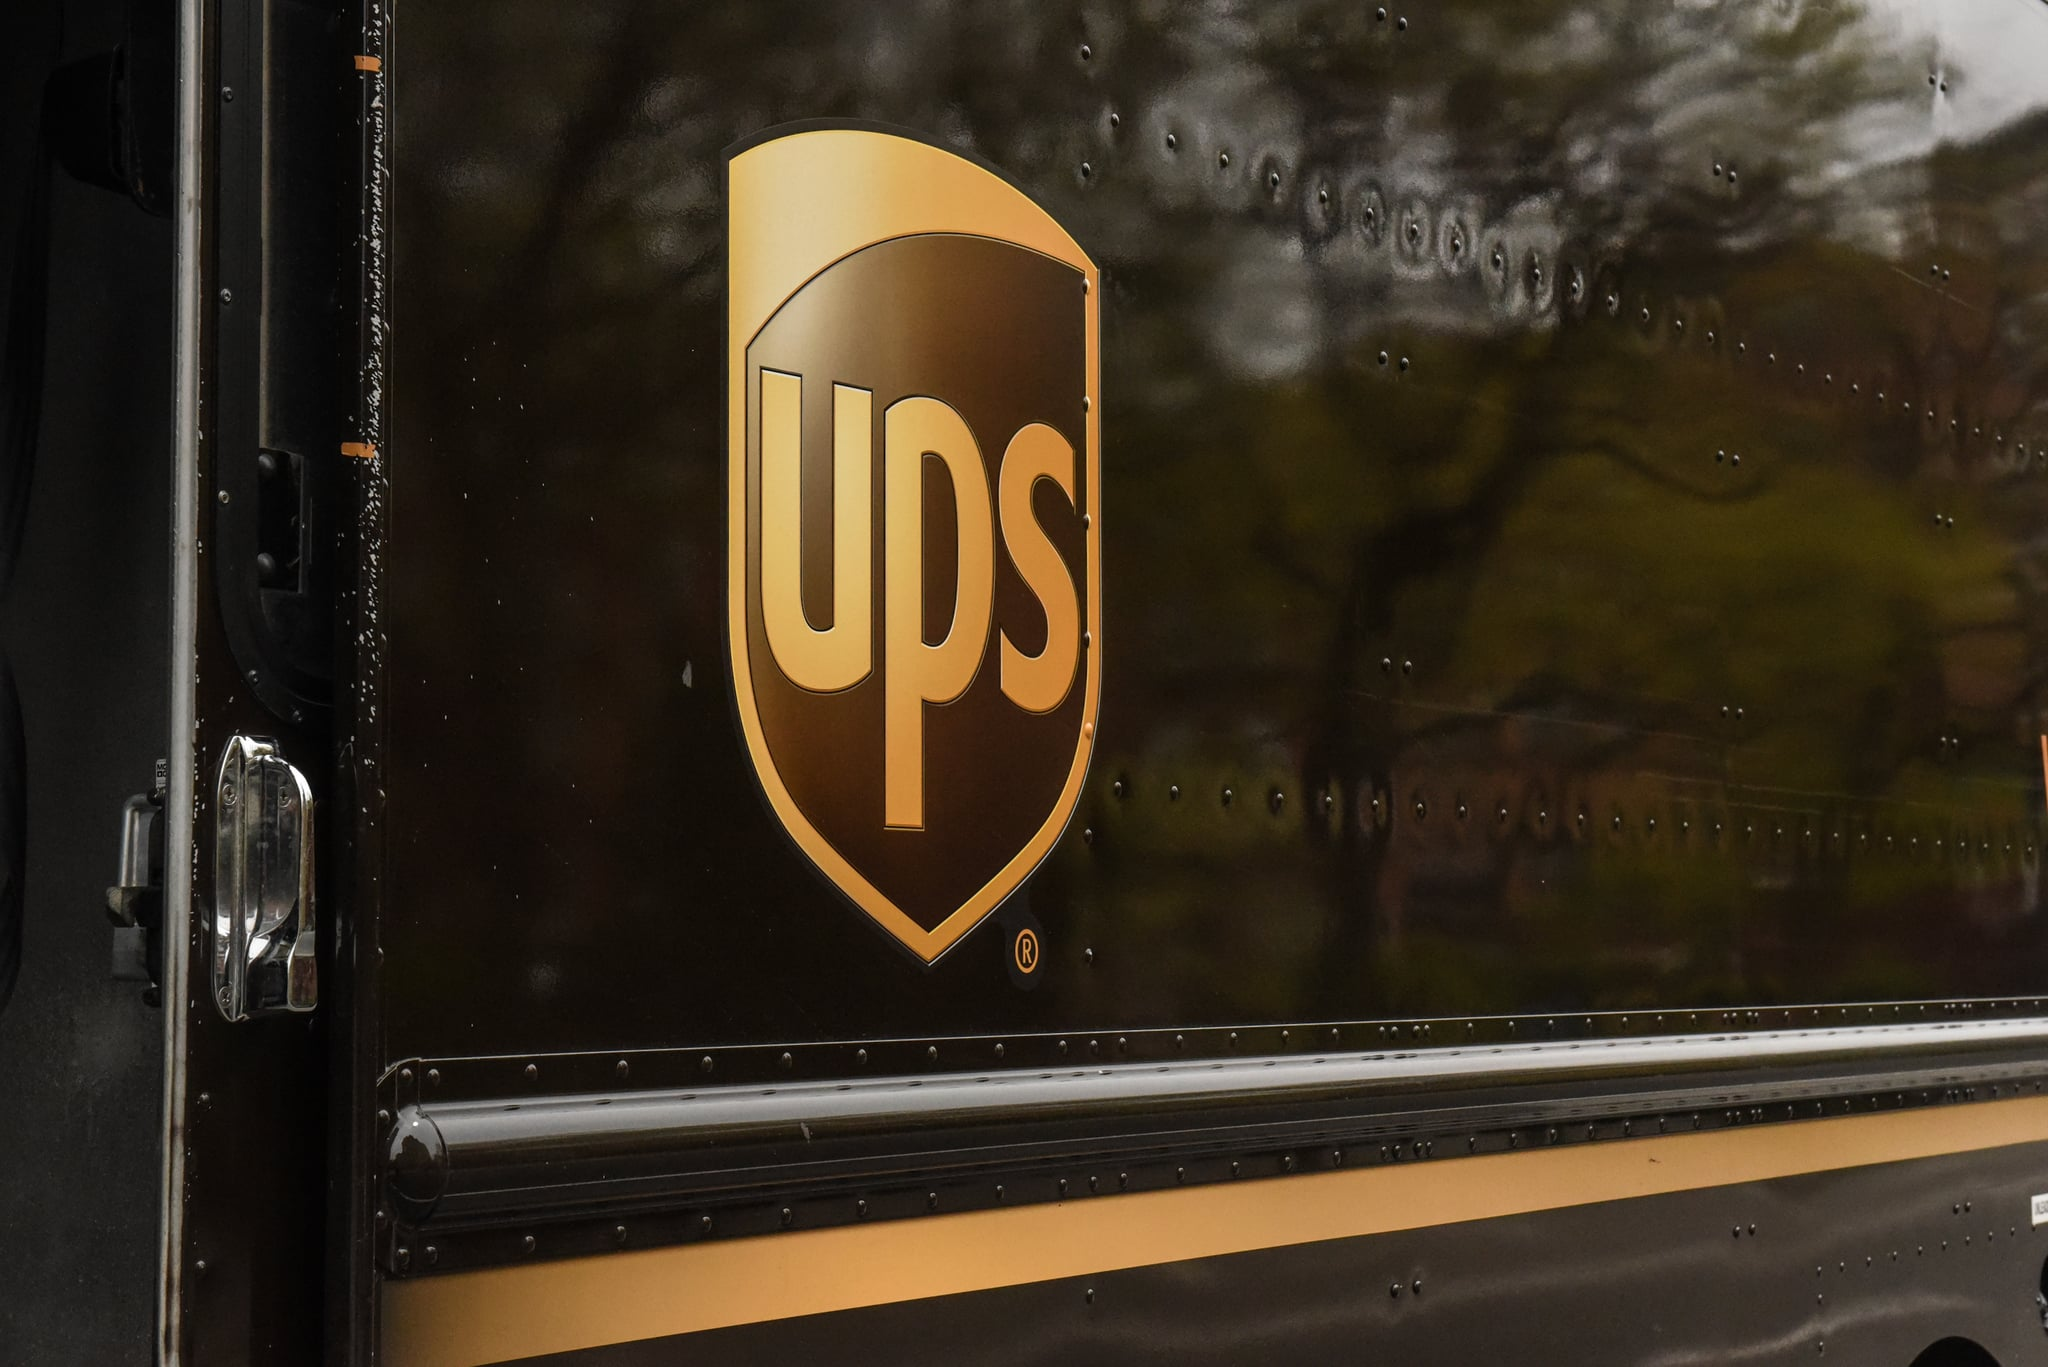 NEW YORK, NY - APRIL 29: A United Parcel Service logo is pictured on April 29, 2020 in New York City. Shares of United Parcel Service, UPS, dropped after the package delivery company reported their first-quarter earnings that fell below expectations.  (Photo by Stephanie Keith/Getty Images)